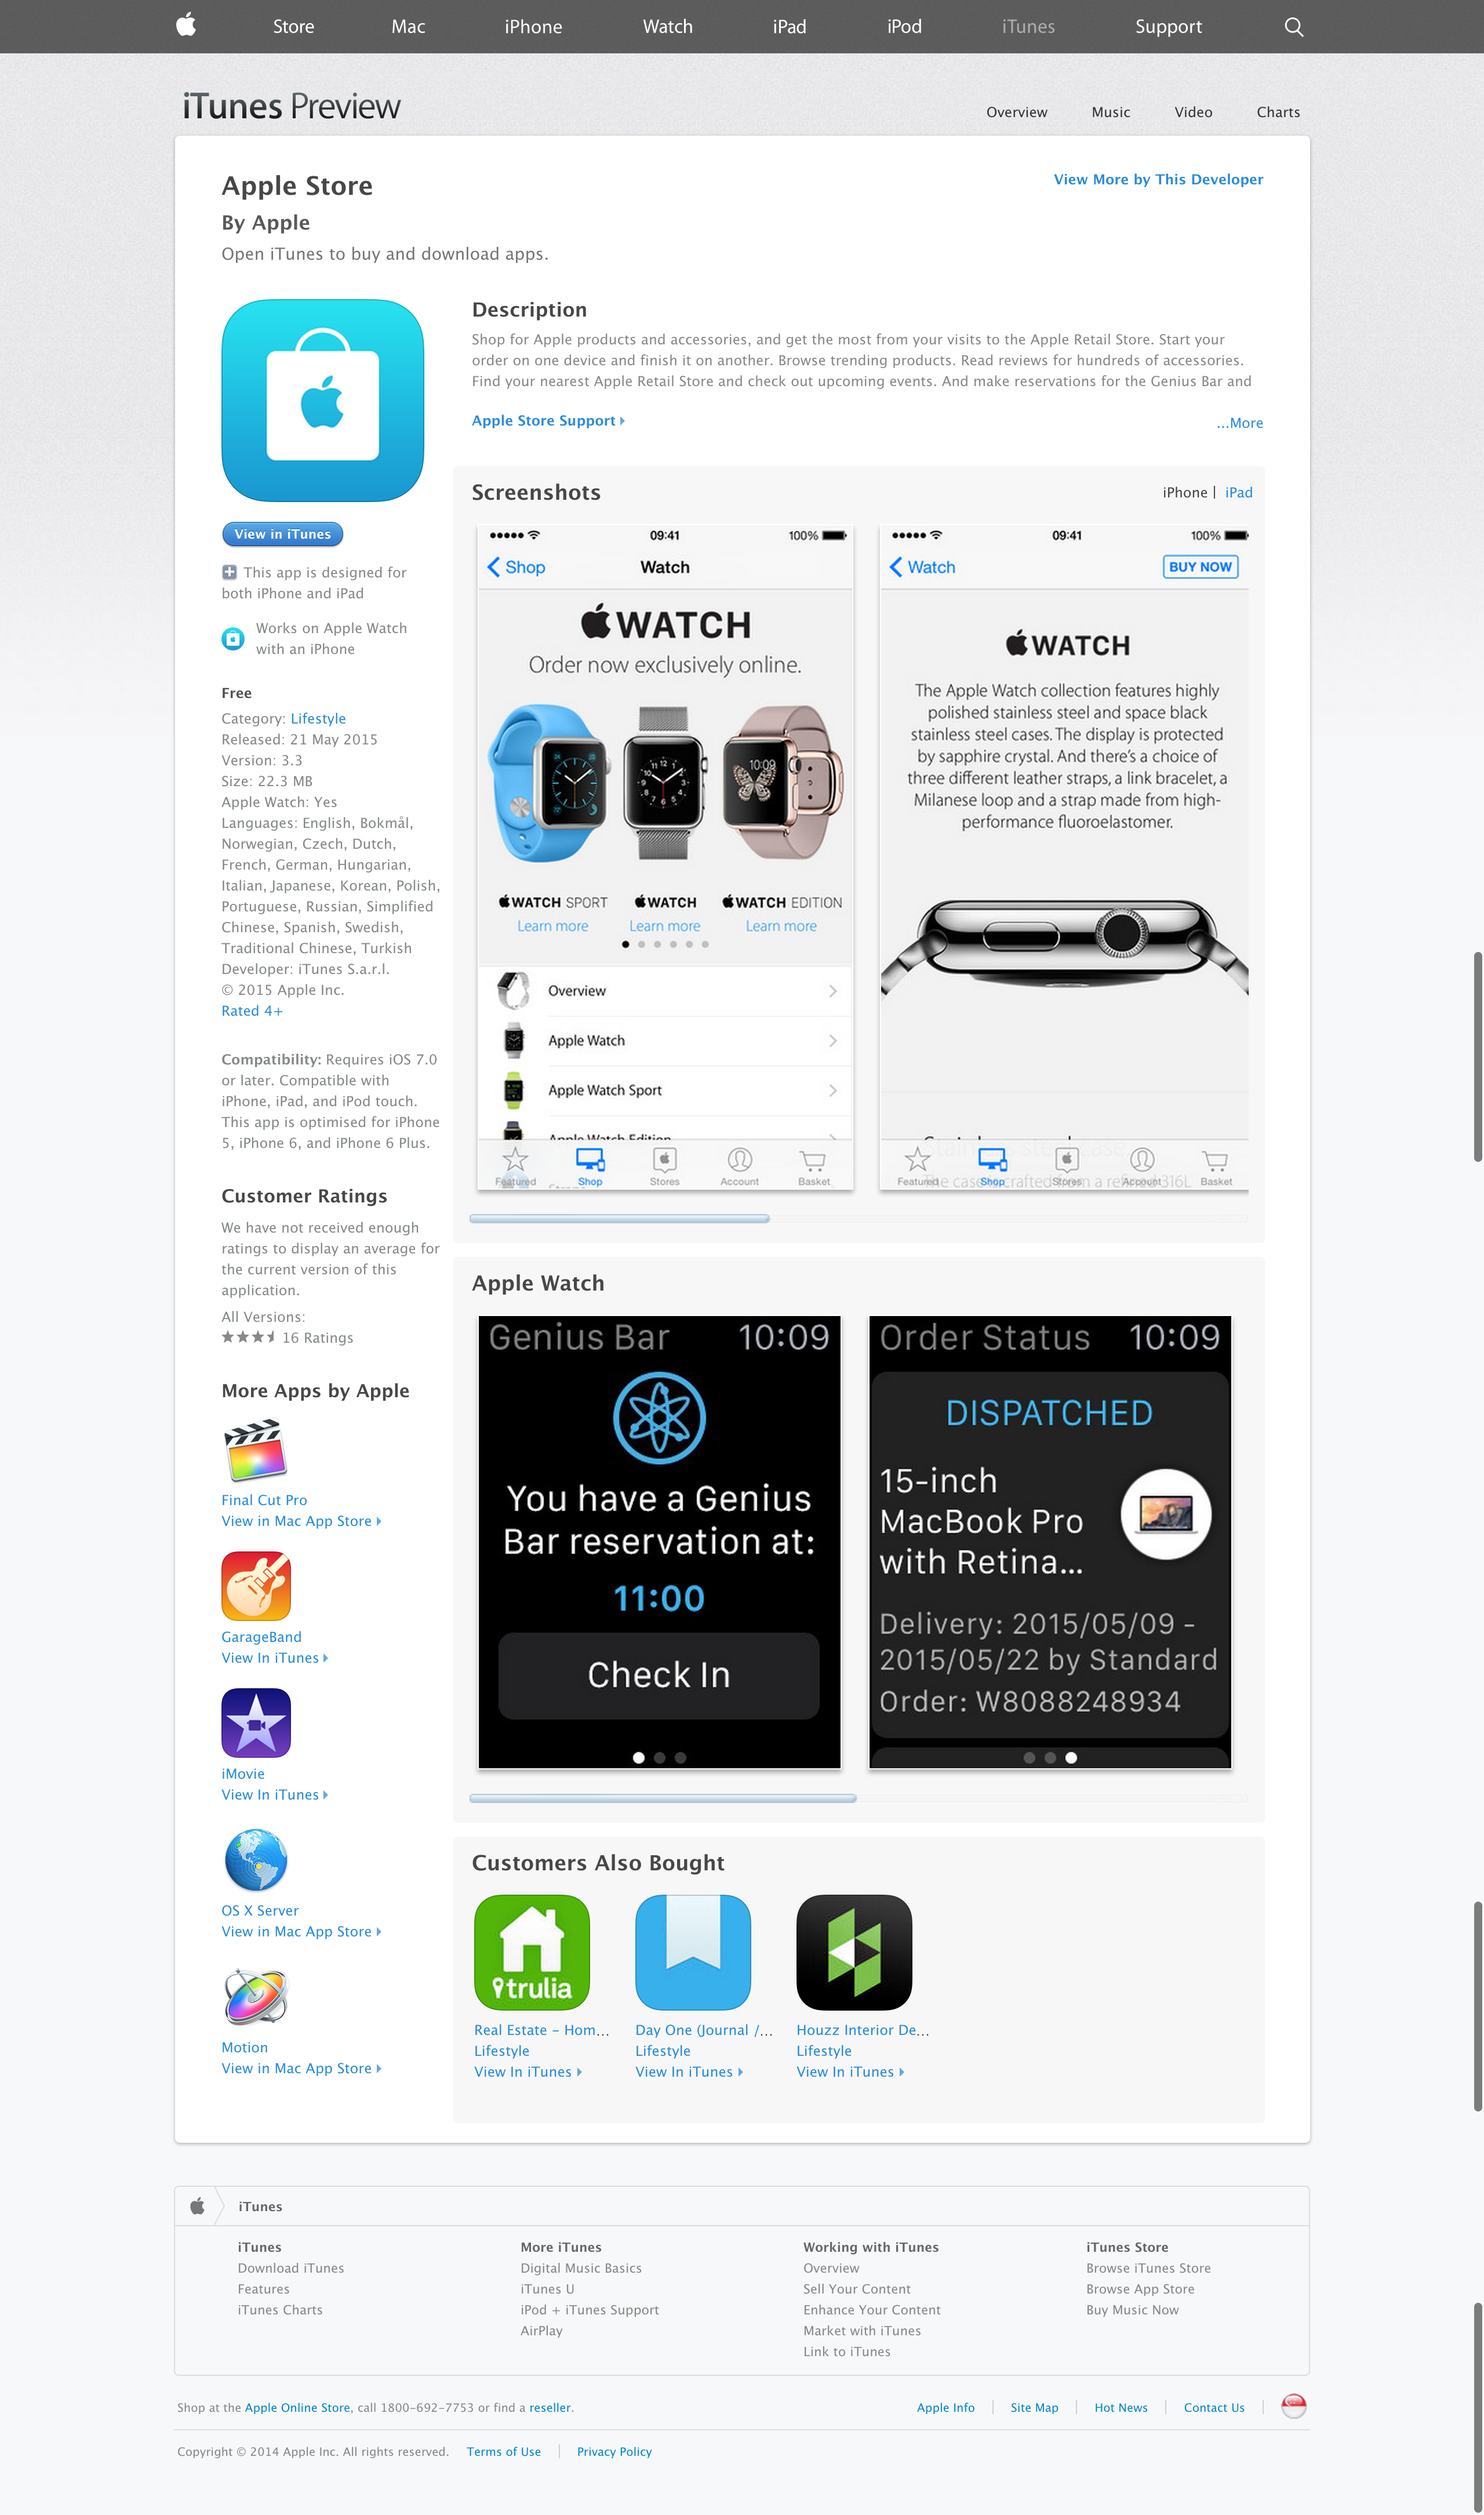 apple store ios app now available in singapore blog. Black Bedroom Furniture Sets. Home Design Ideas